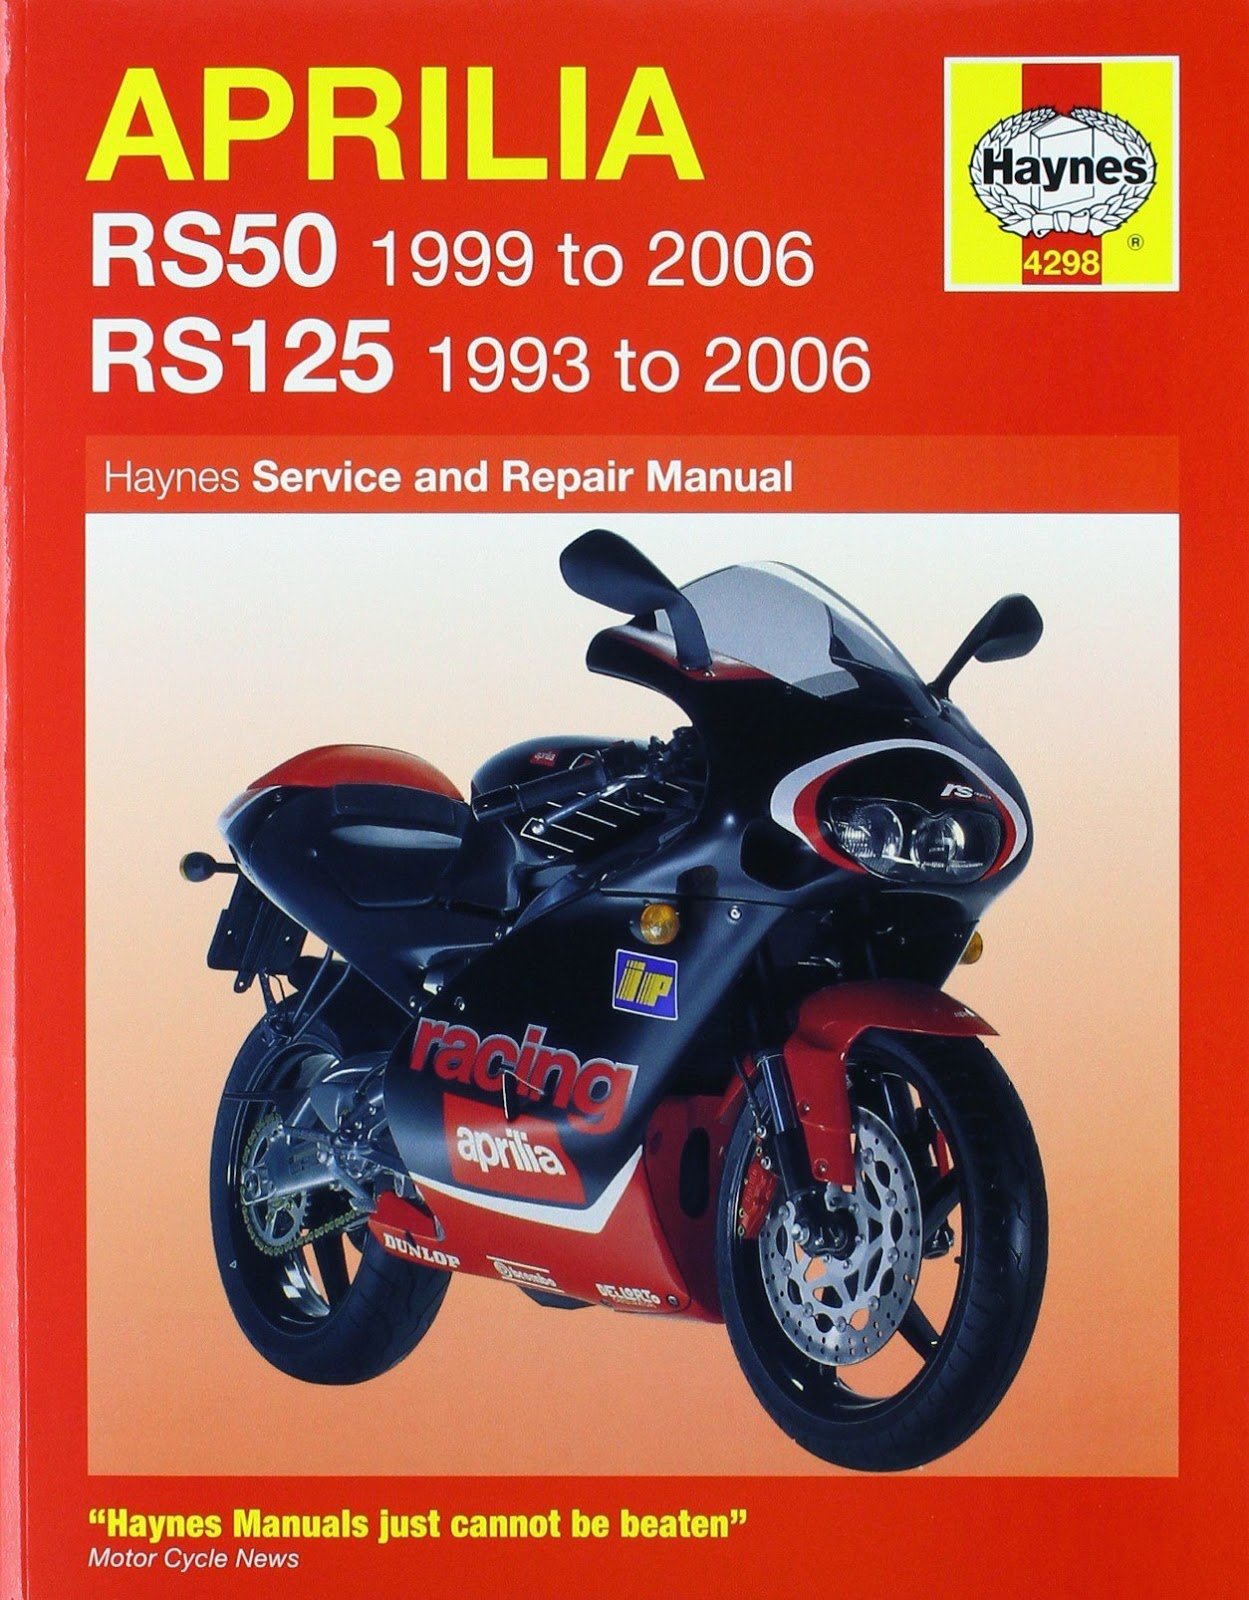 APRILIA RS 125 aprilia RS 125 wiring diagrams electrics RS125